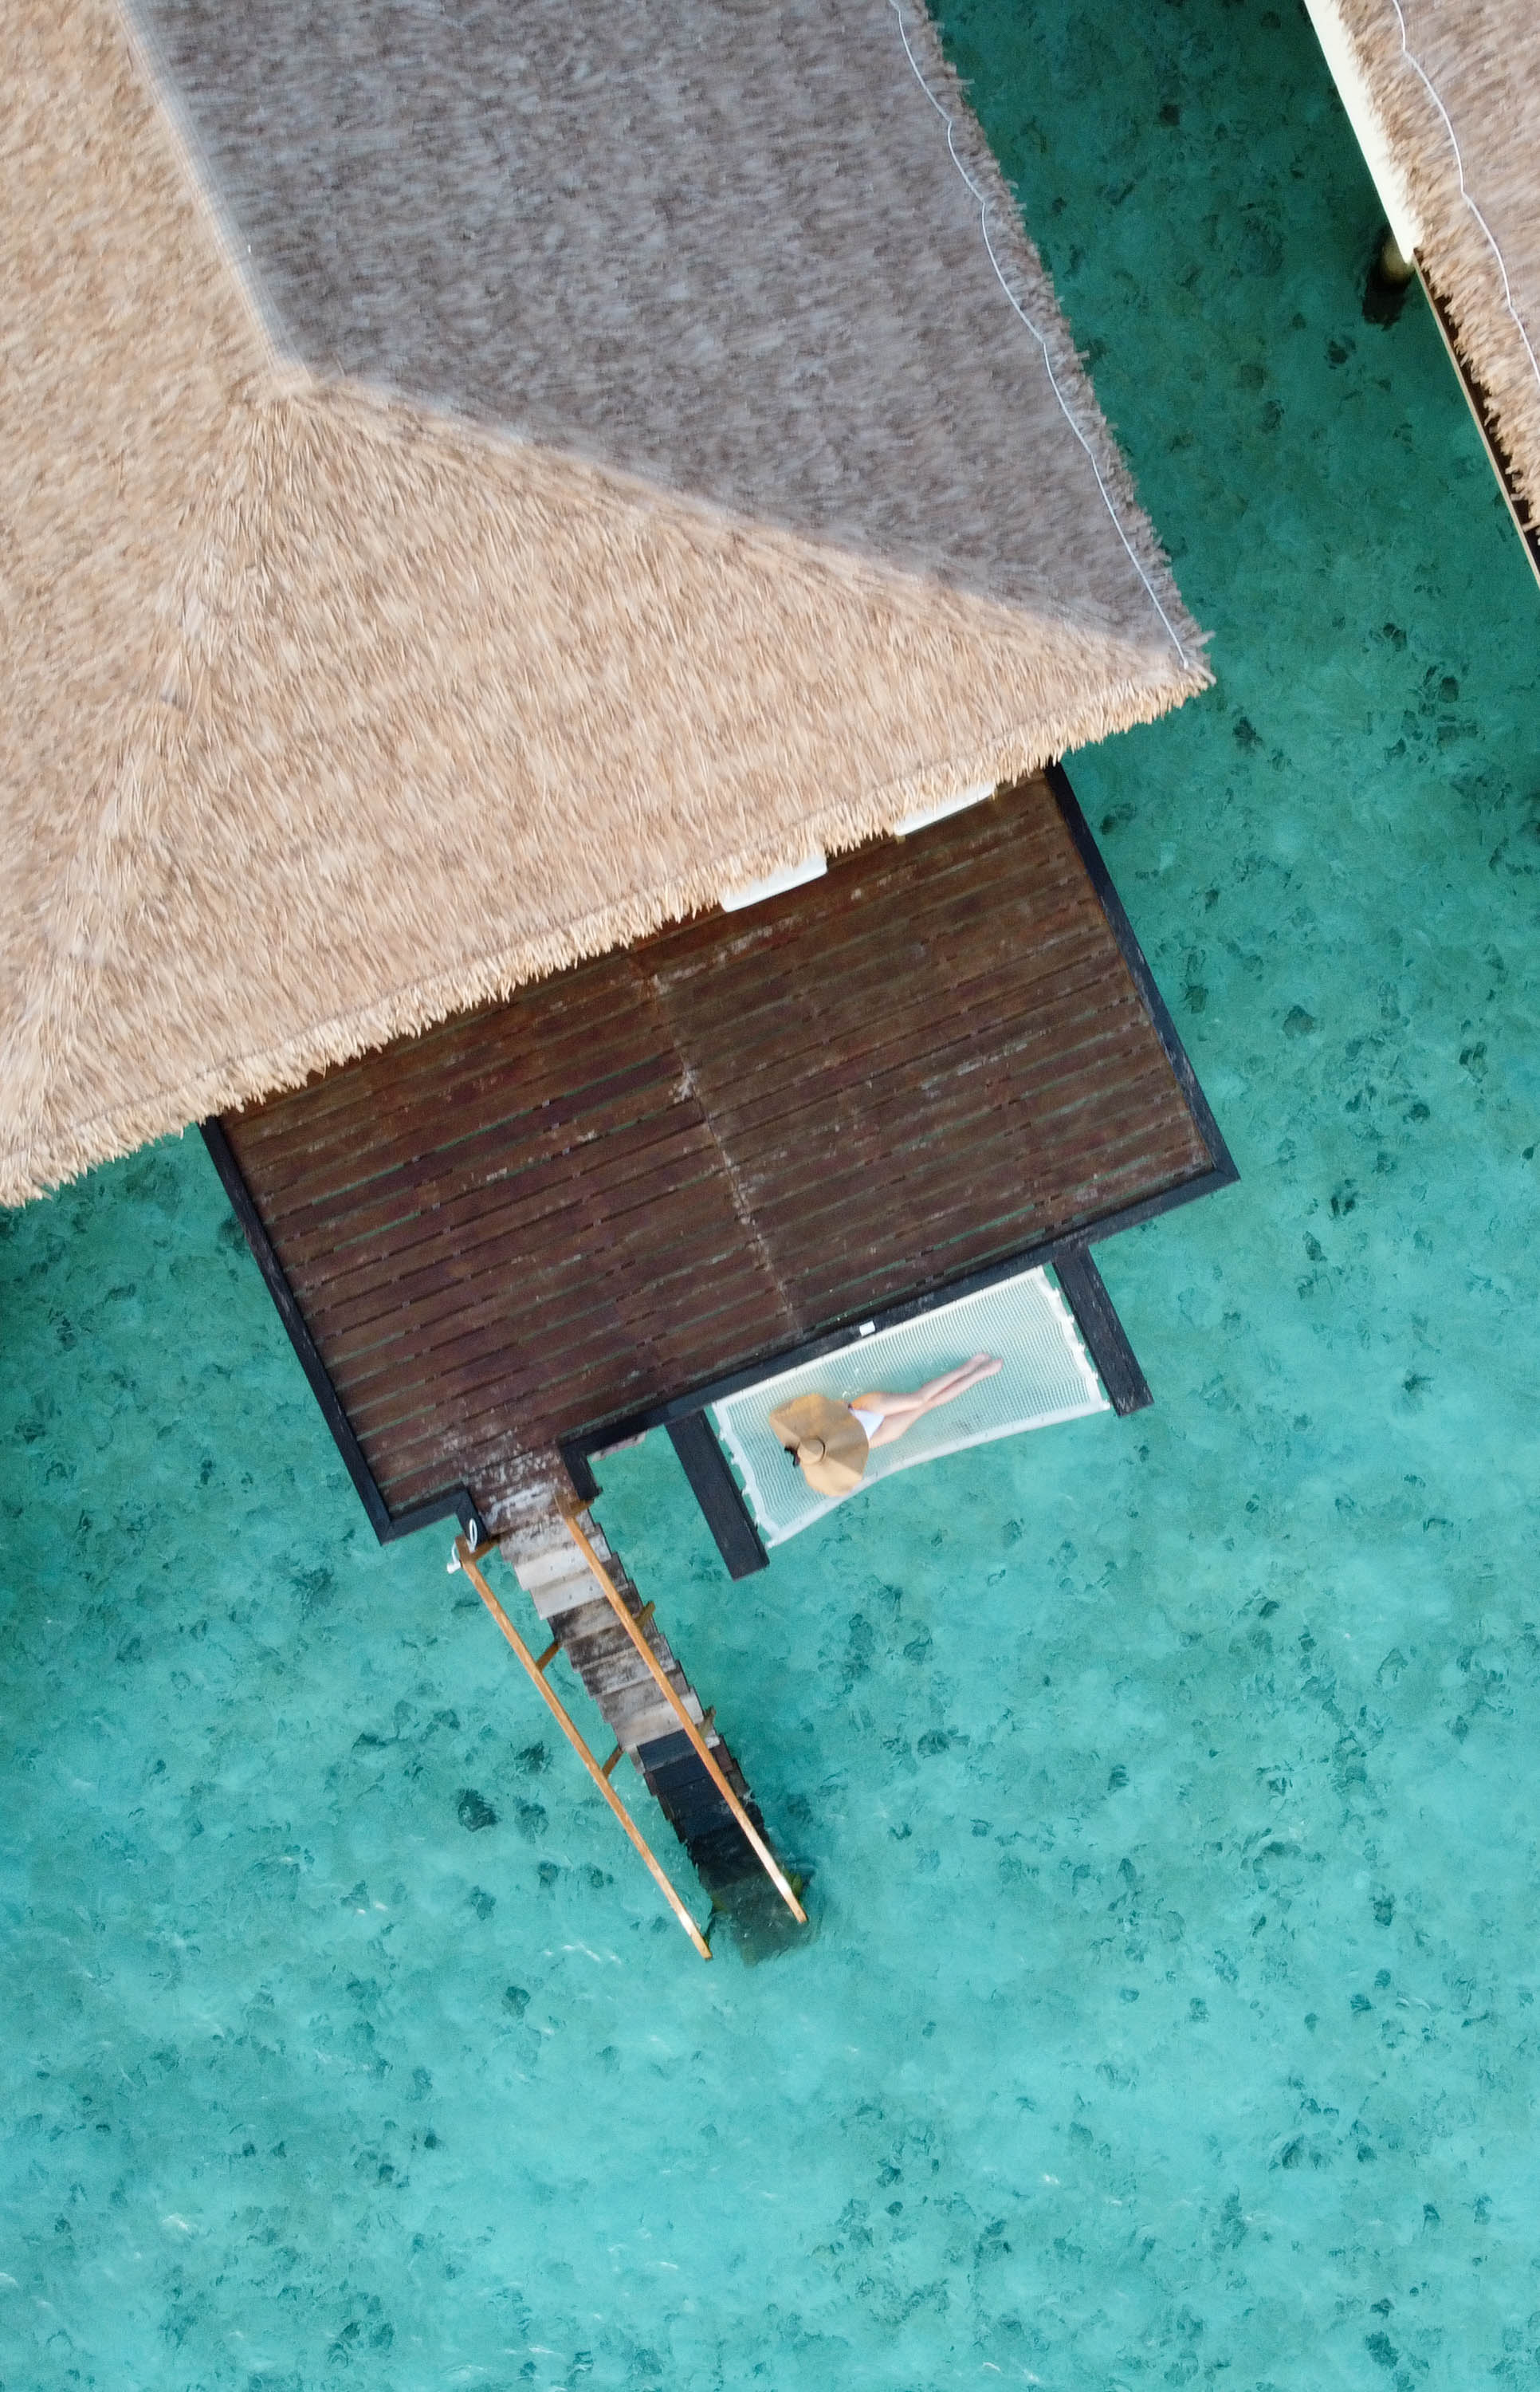 I Traveled to the Maldives Solo and Single, Why You Should Consider it